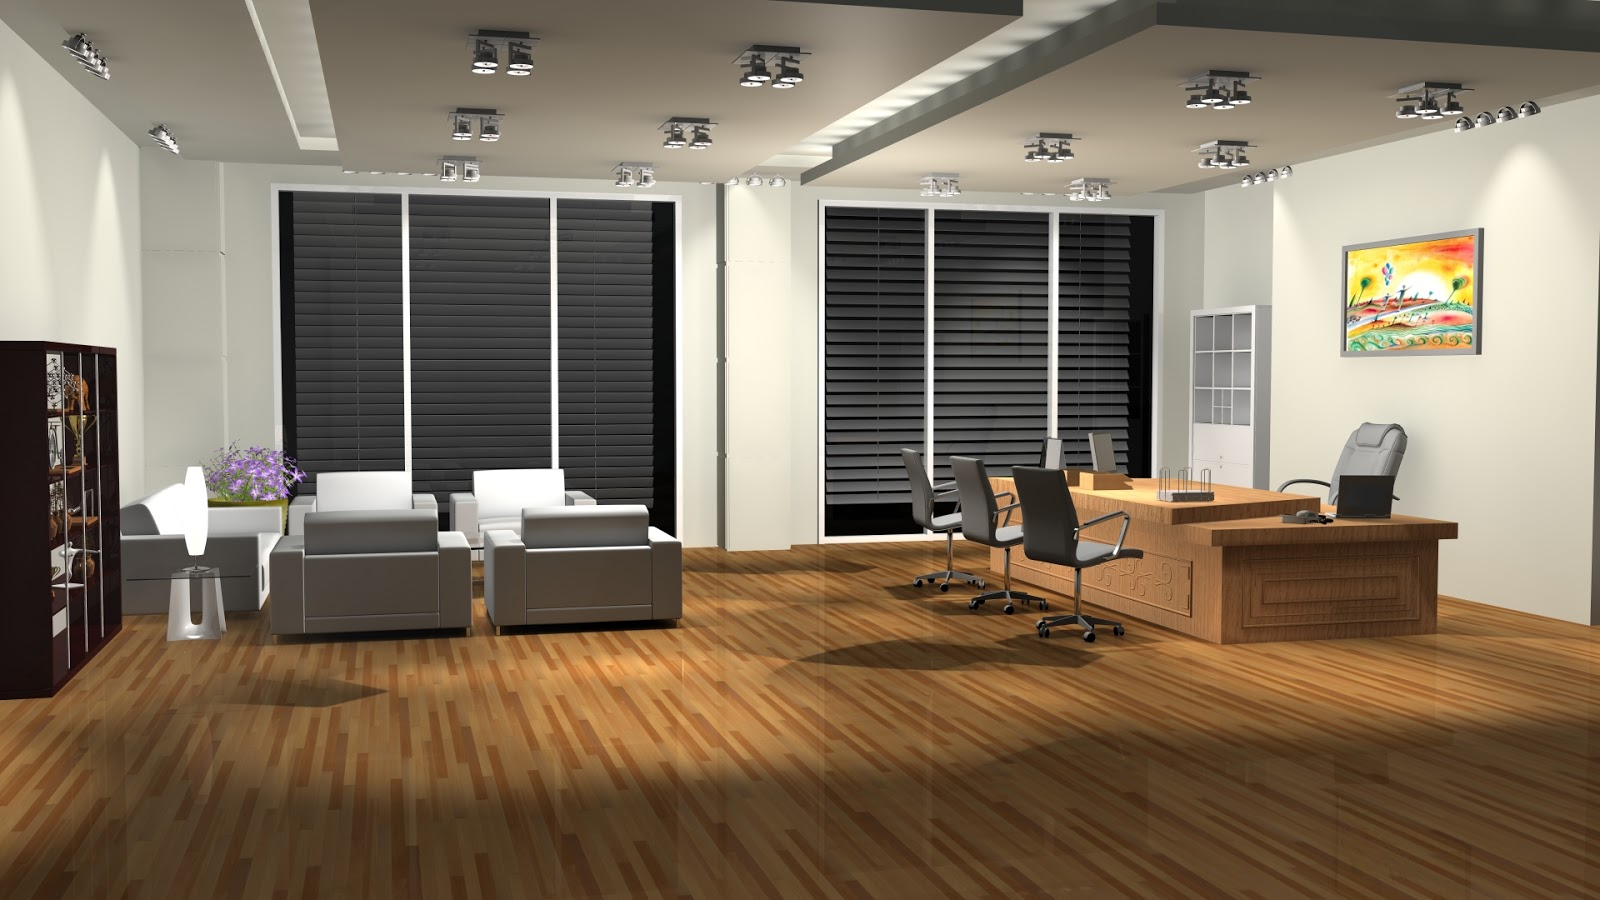 Sajid designs office room 3d interior design 3ds max Office design 3d